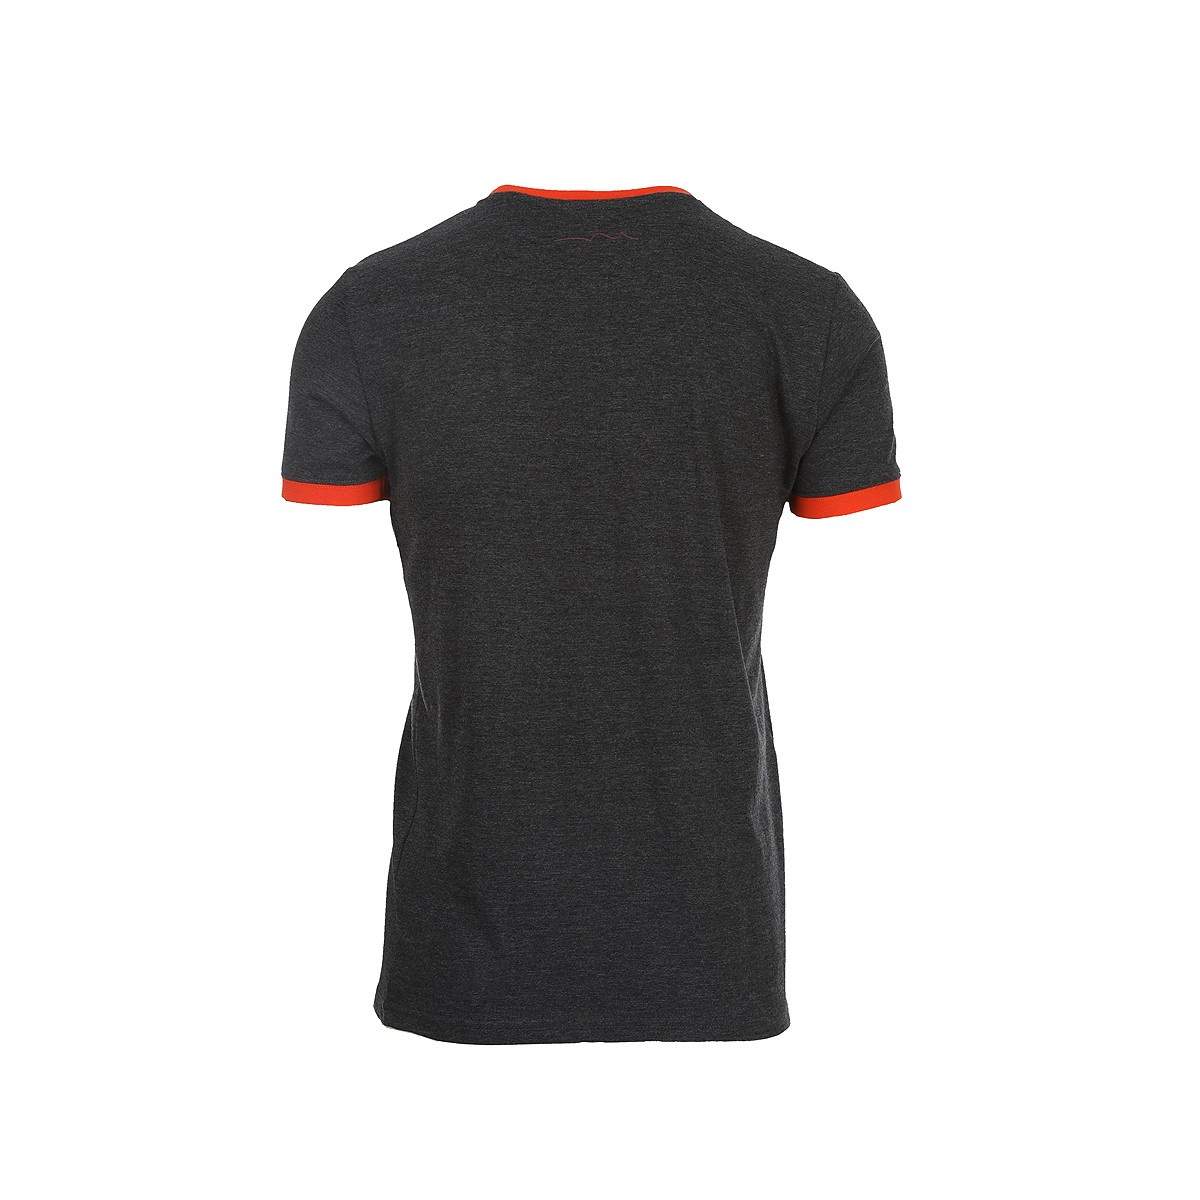 T-shirt manches courtes homme noir TEDDY SMITH